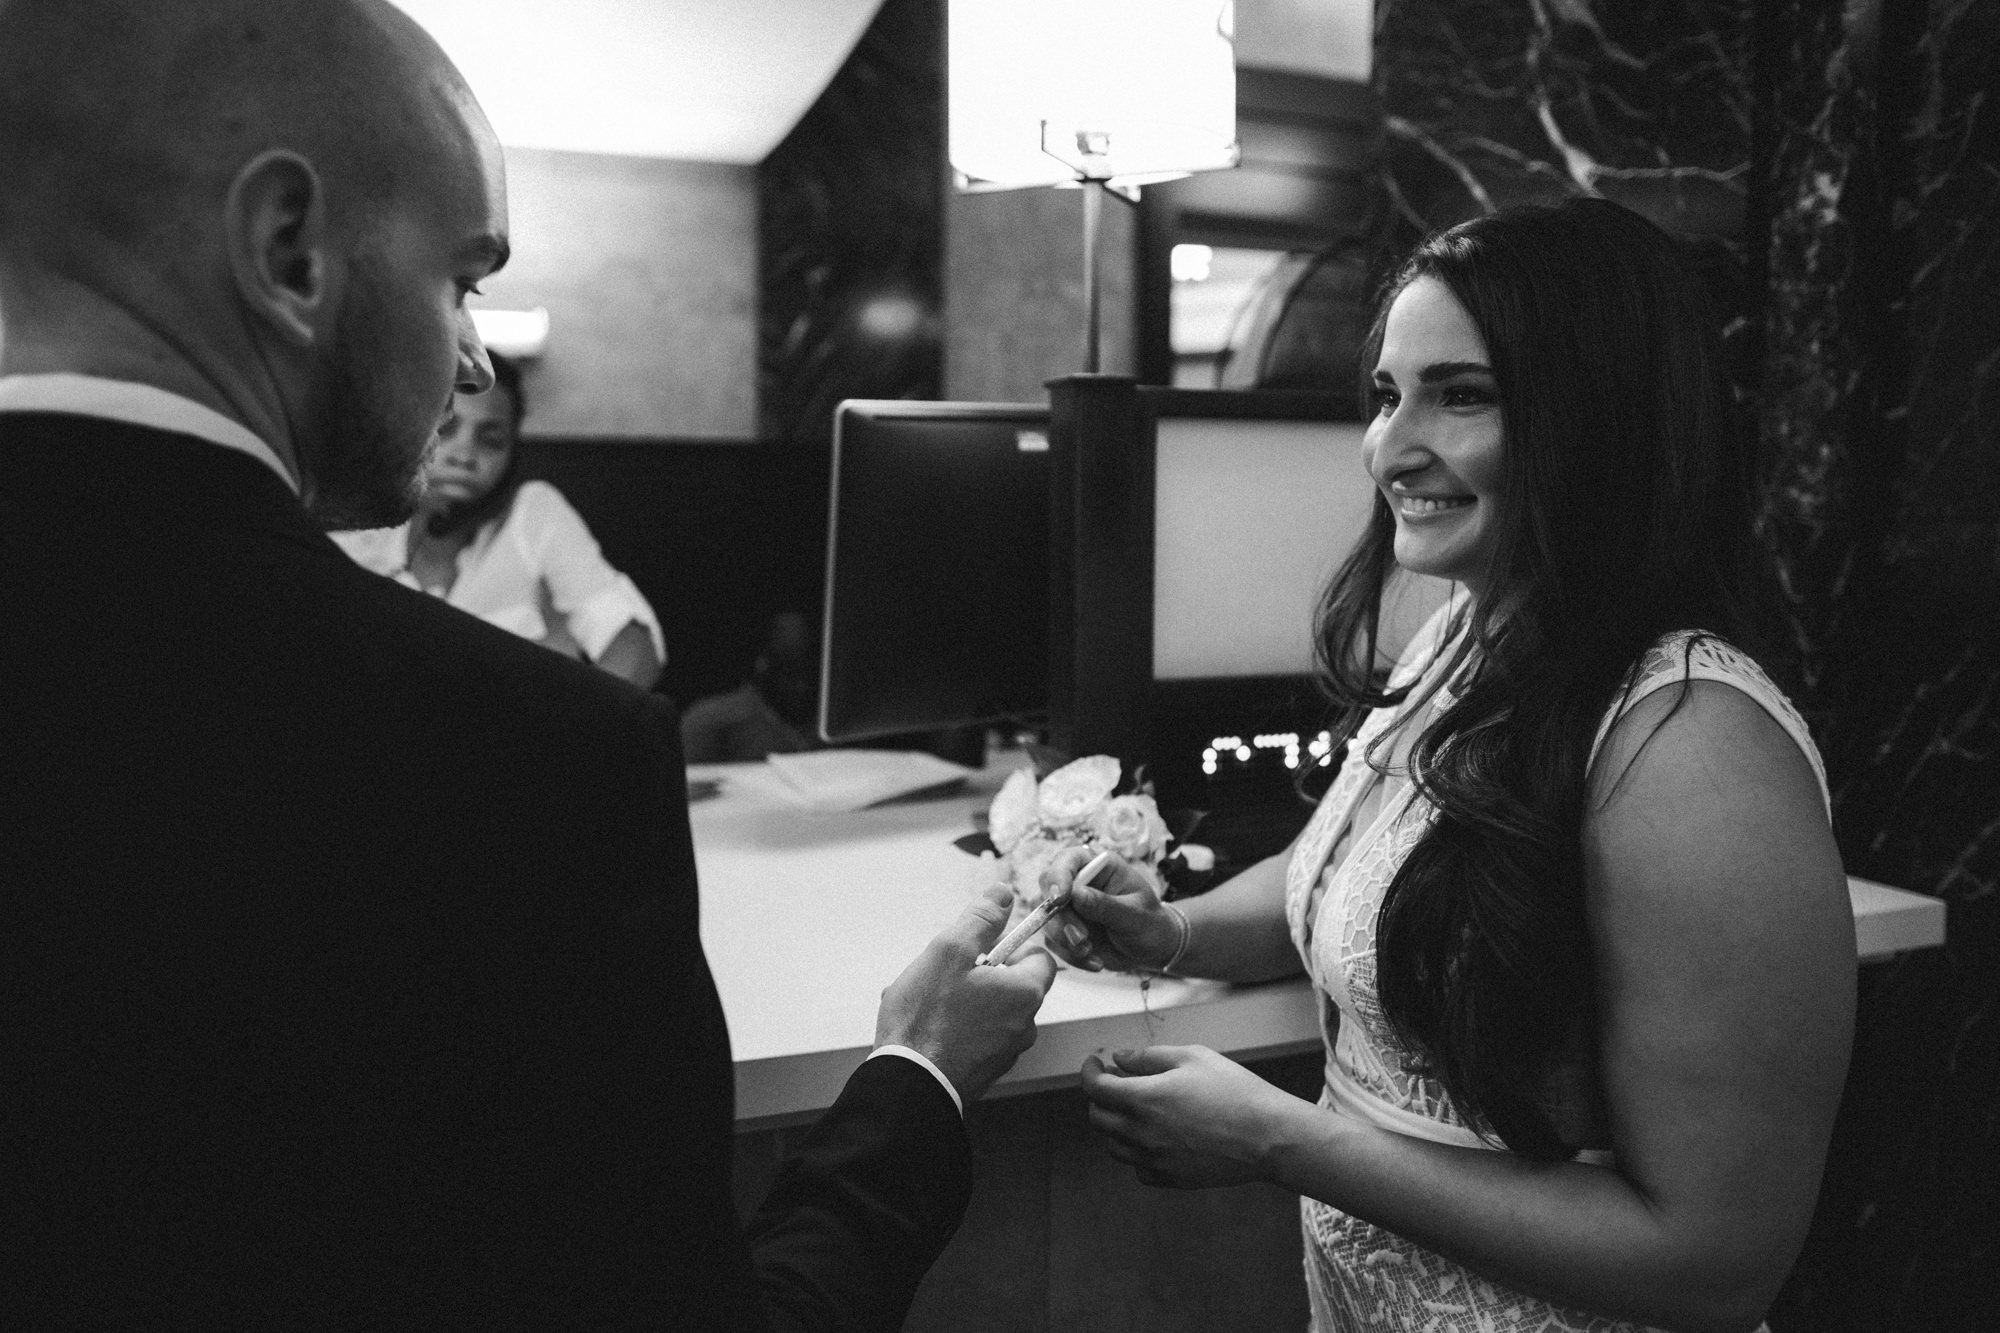 NYC_ELOPEMENT_CITYHALL_BROOKLYN_SAMMBLAKE_0014.jpg